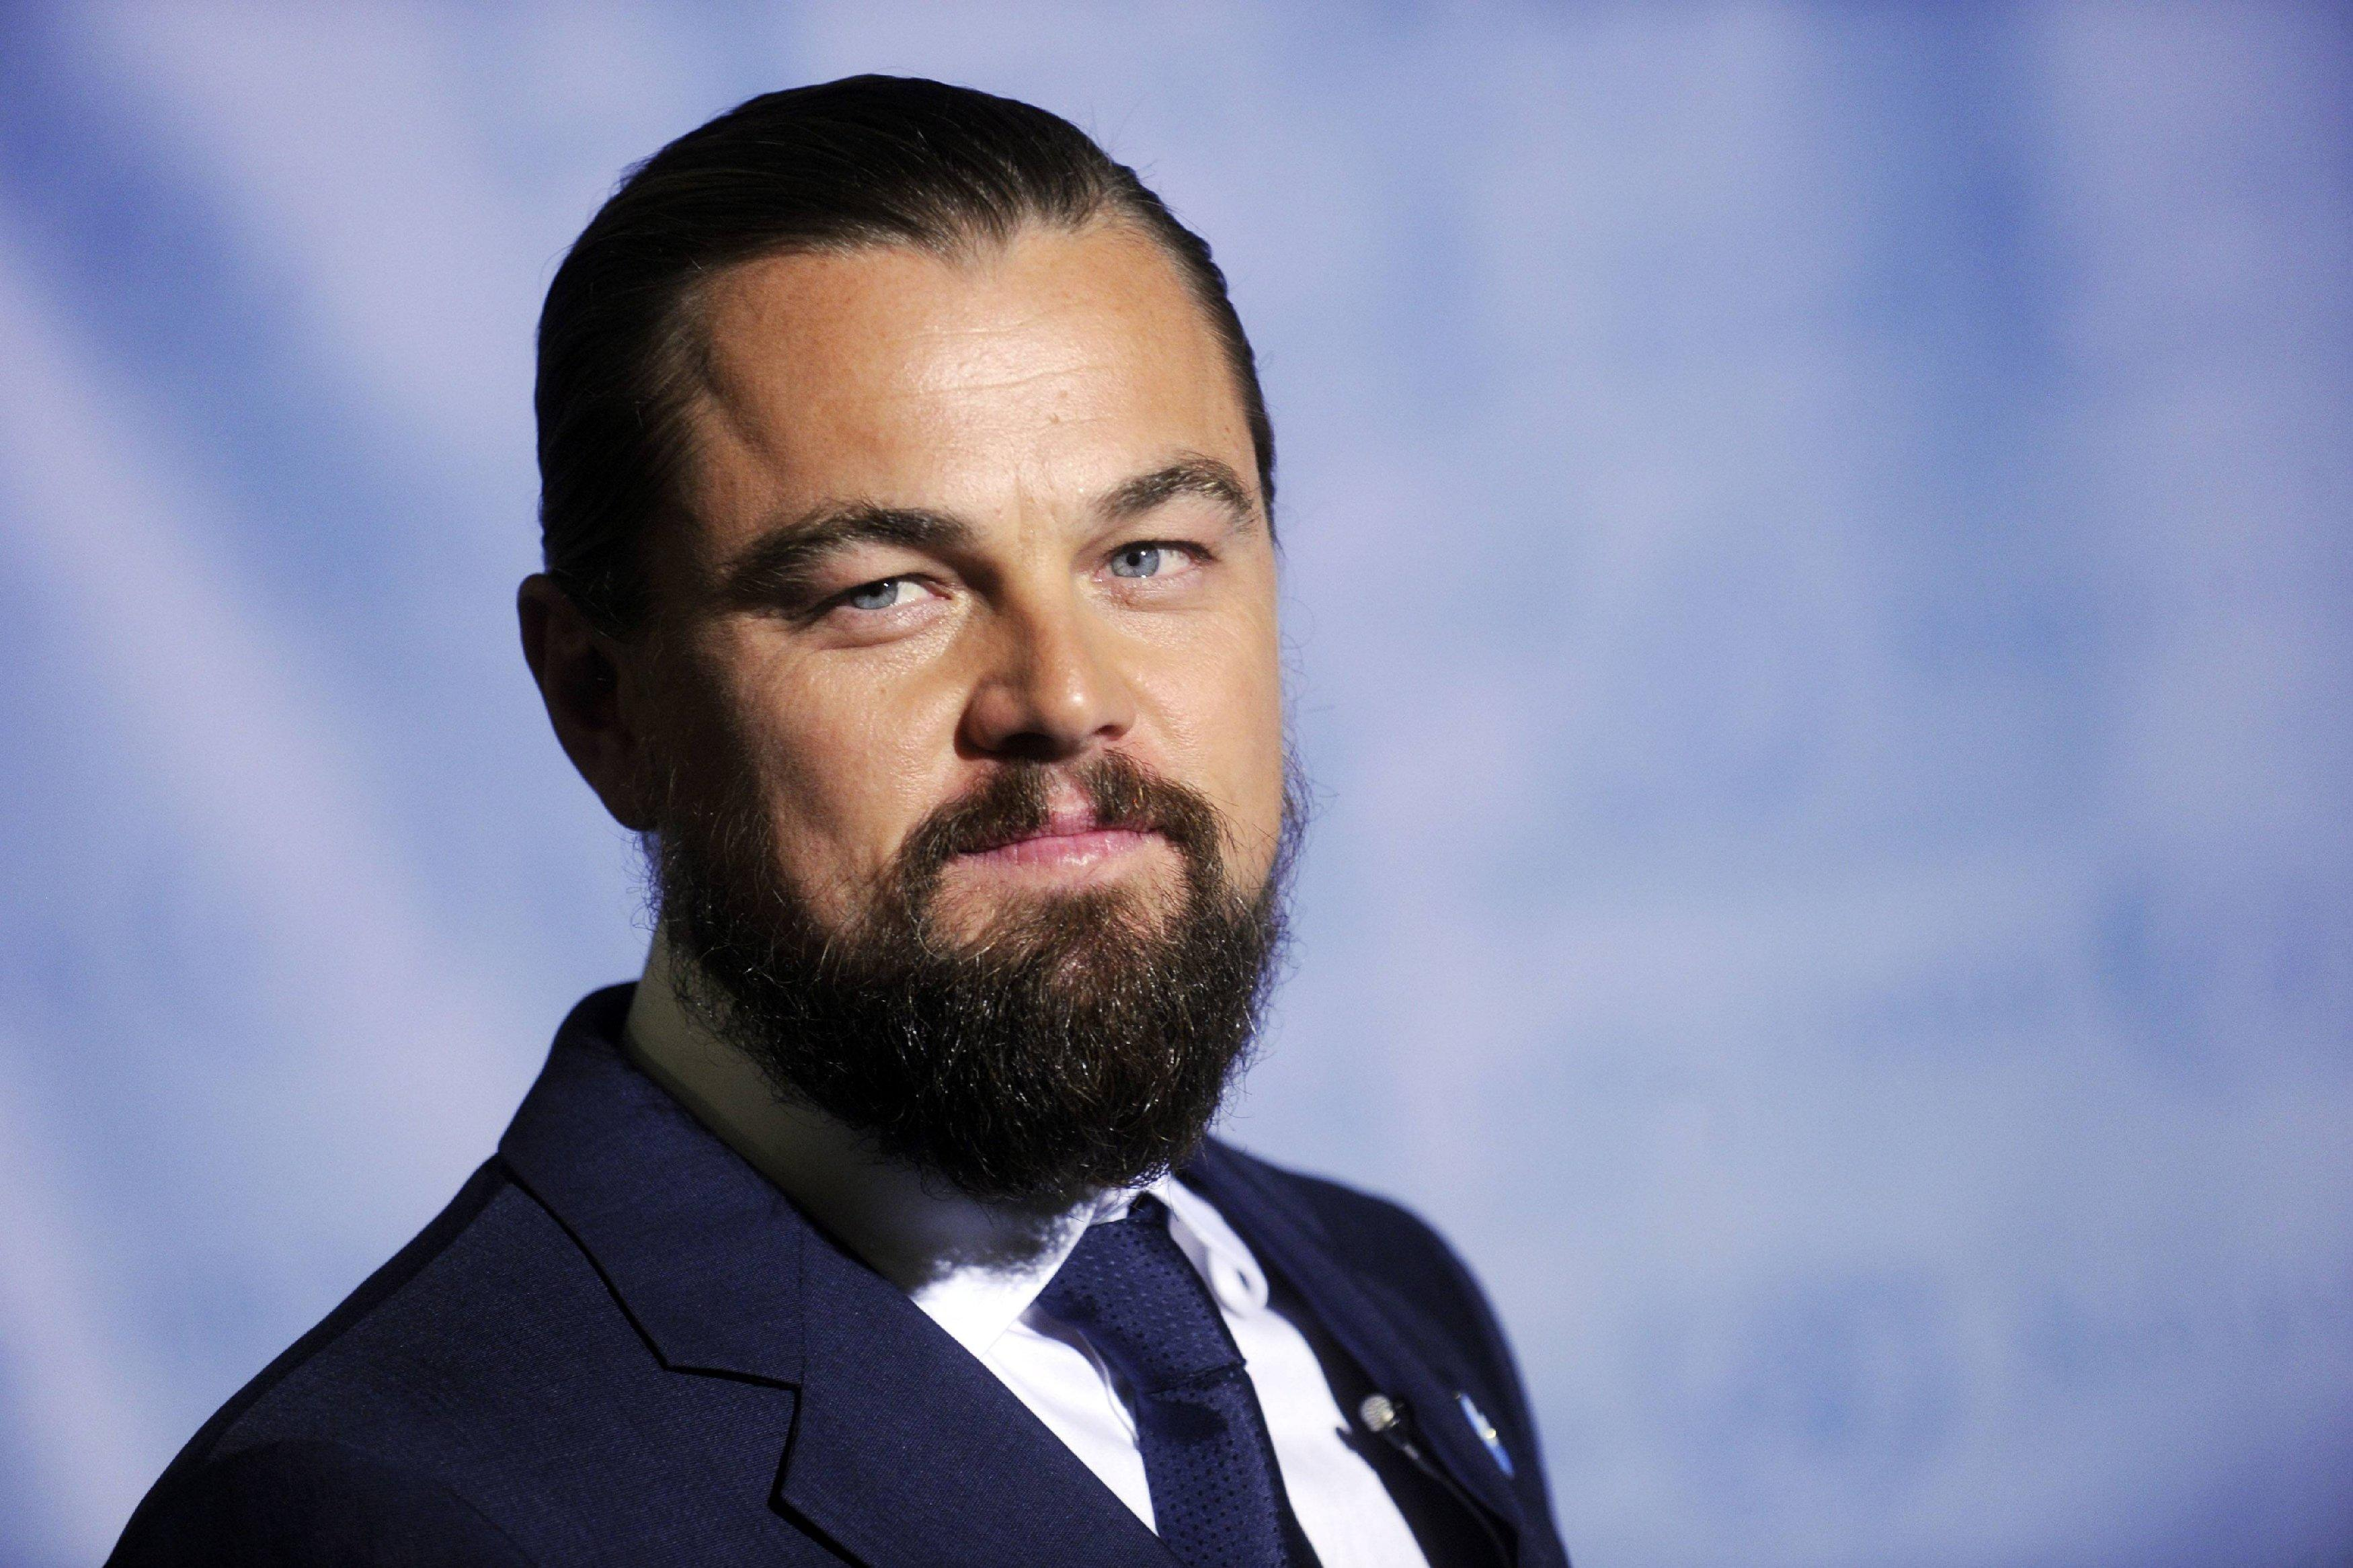 Leonardo DiCaprio bei der Ernennung zum UN-Botschafter des Friedens   im Hauptquartier der Vereinten Nationen. New York, 20.09.2014 xD.xVanxTinex/xFuturexImage  Leonardo DiCaprio at the Appointment to UN Ambassador the Peace in Headquarters the United Nations New York 20 09 2014 XD xVanxTinex xFuturexImage